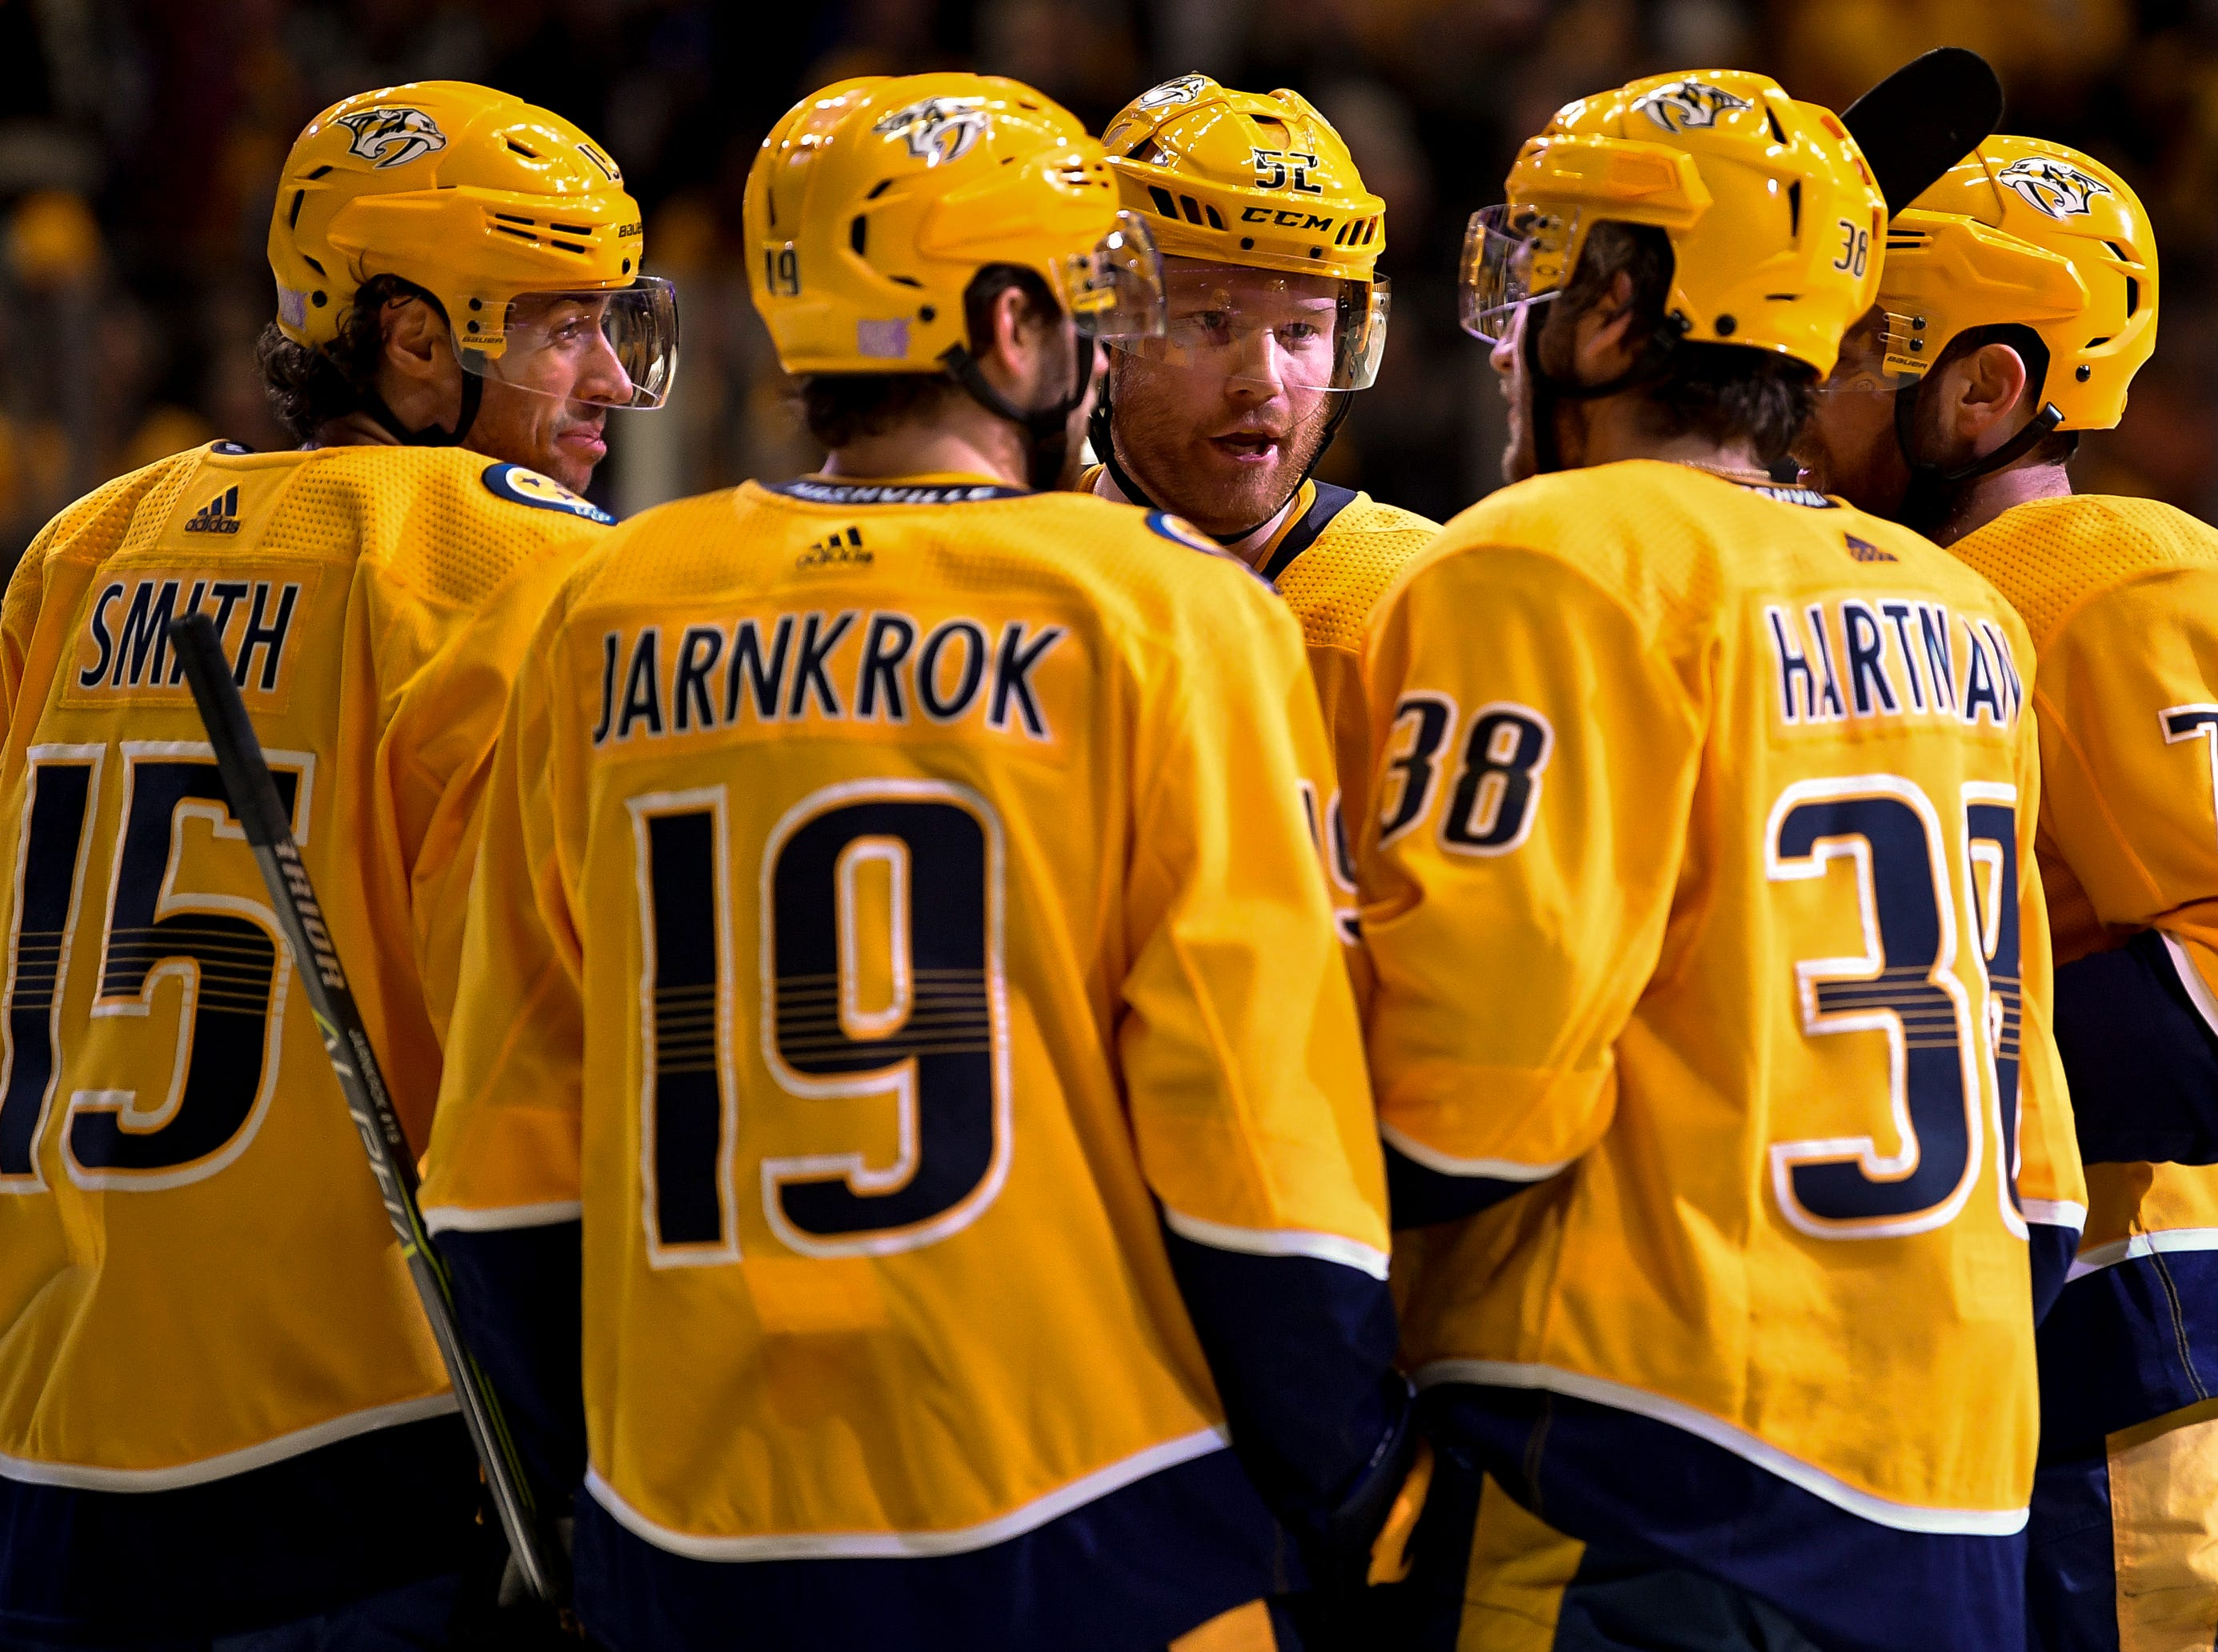 Nashville Predators right wing Ryan Hartman (38) celebrates his goal against the Colorado Avalanche with teammates during the first period at Bridgestone Arena in Nashville, Tenn., Tuesday, Nov. 27, 2018.